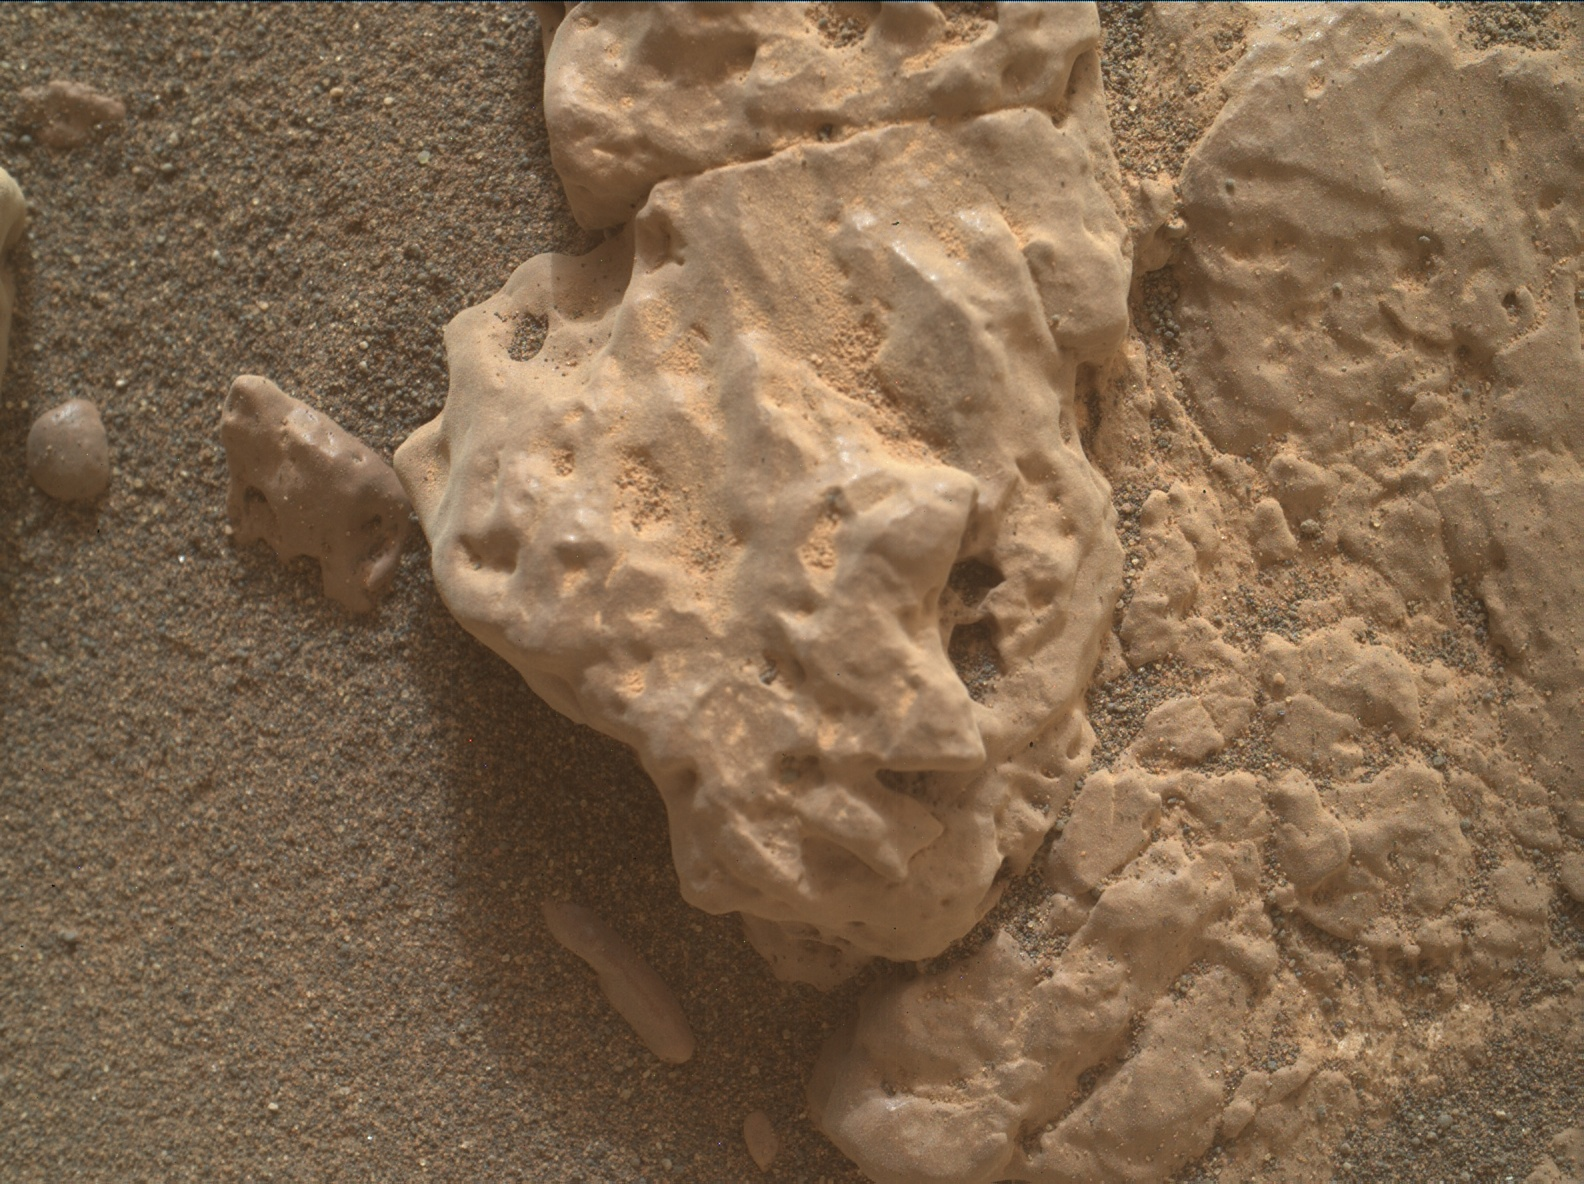 Nasa's Mars rover Curiosity acquired this image using its Mars Hand Lens Imager (MAHLI) on Sol 2315